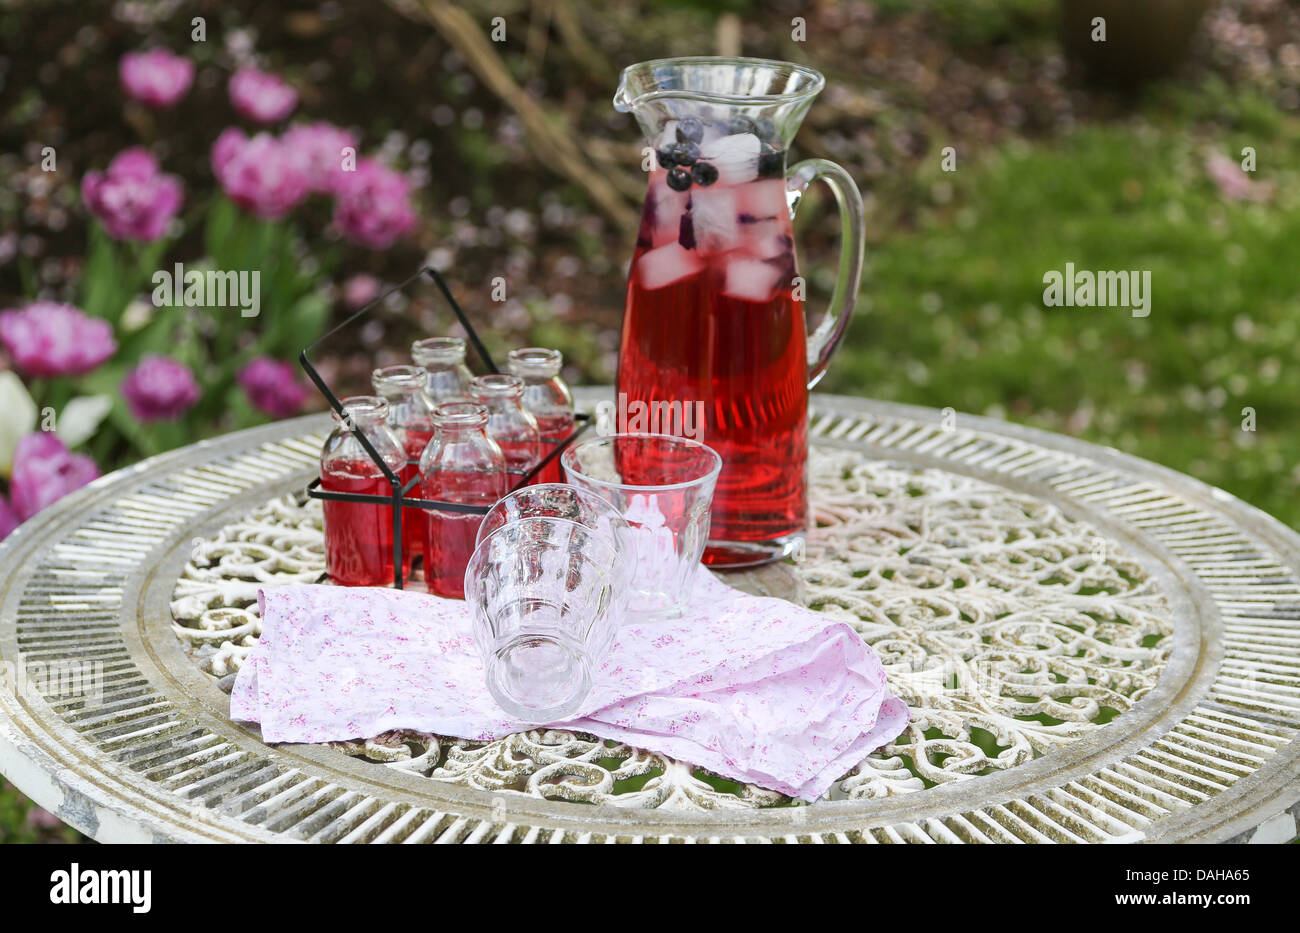 Summer drink of cold red fruit flavour juice - shallow depth of field - Stock Image